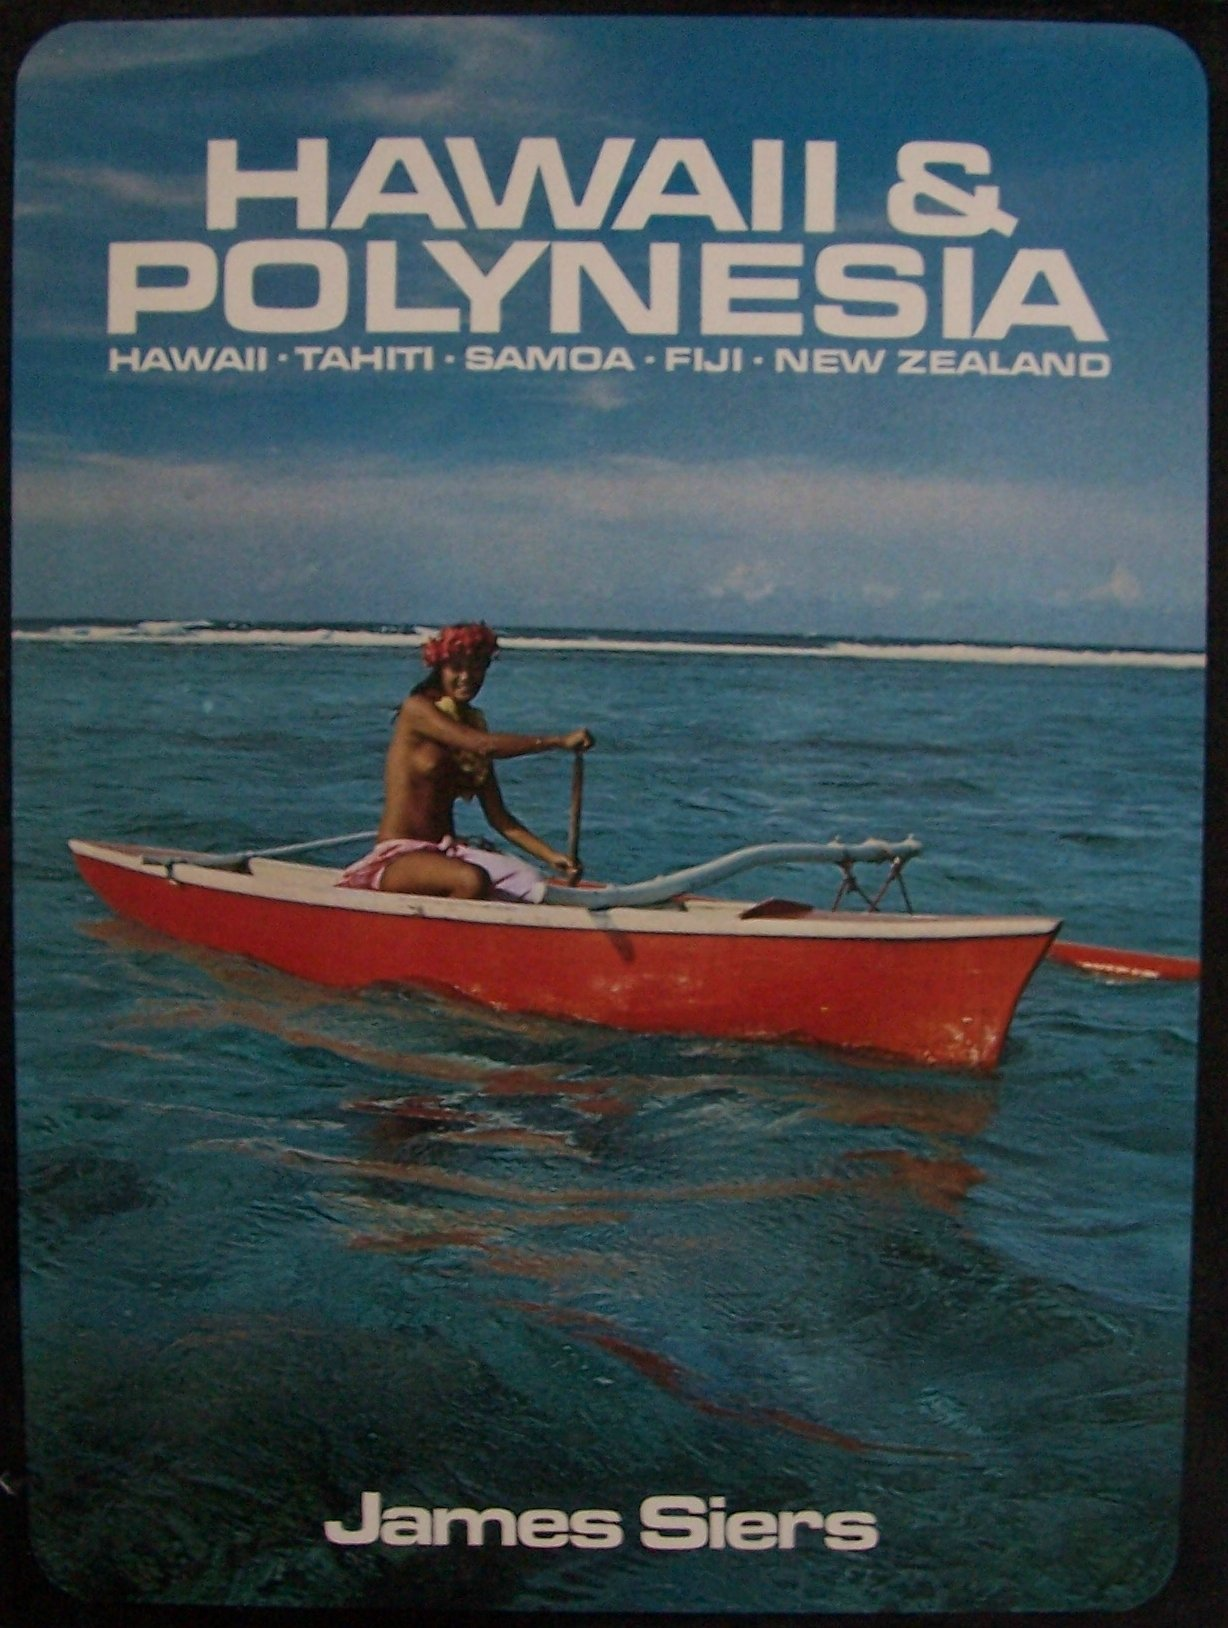 Hawaii & Polynesia [ 1973 ] (Hawaii, Tahiti, Samoa, Fiji, New Zealand)